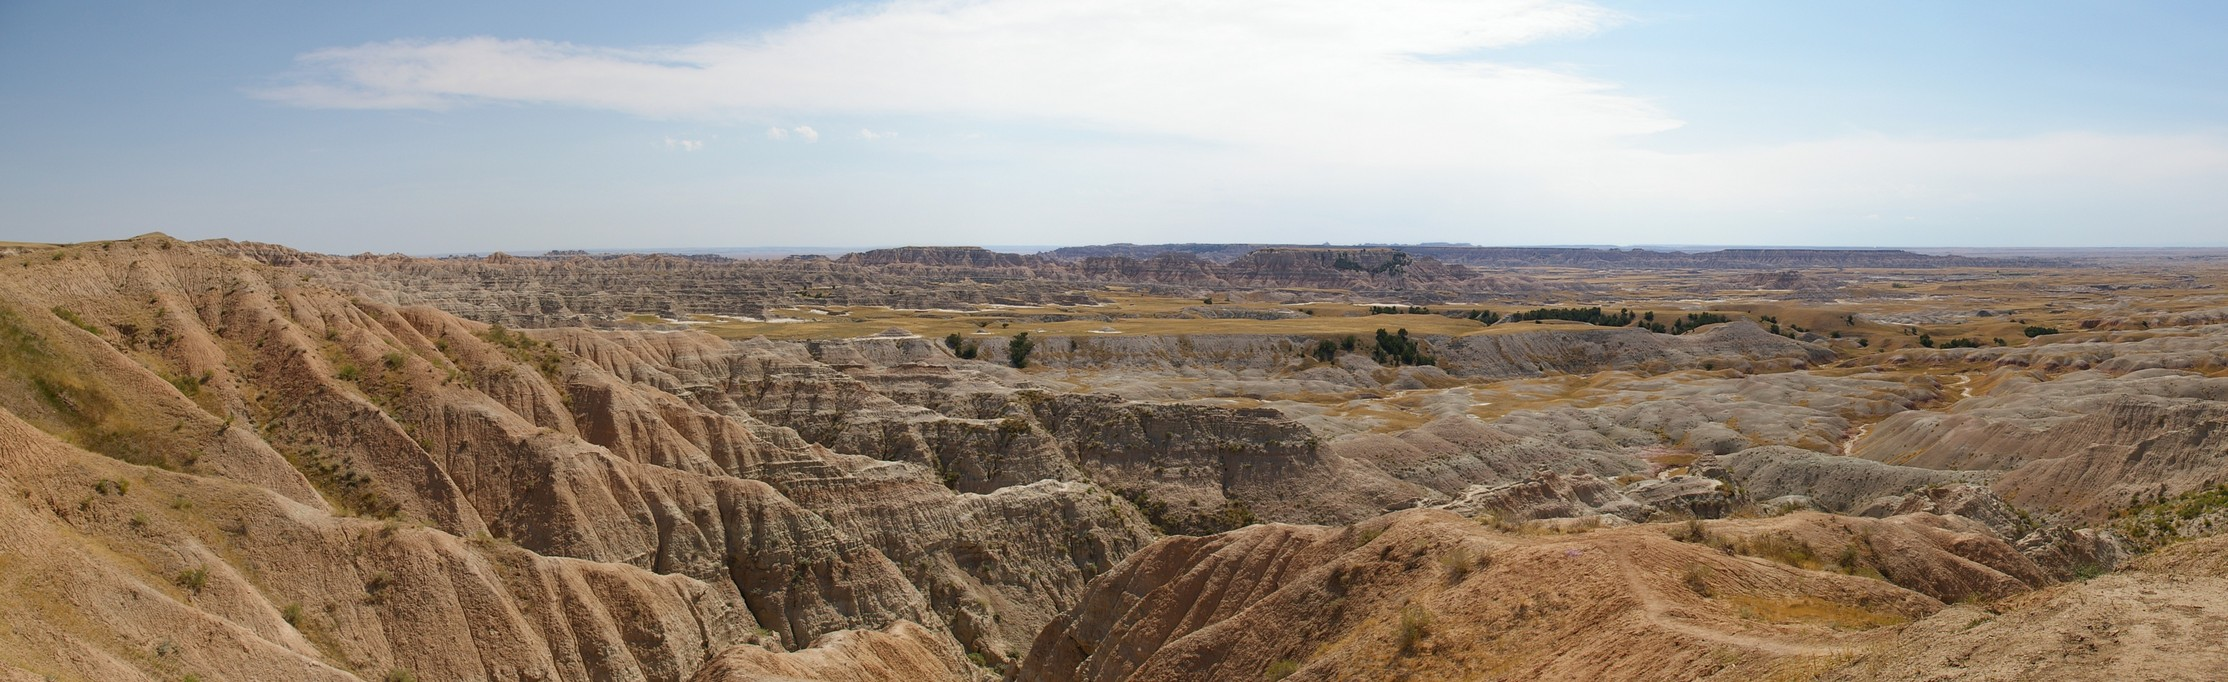 panoramic_badlands_pano6_crop_180.jpg